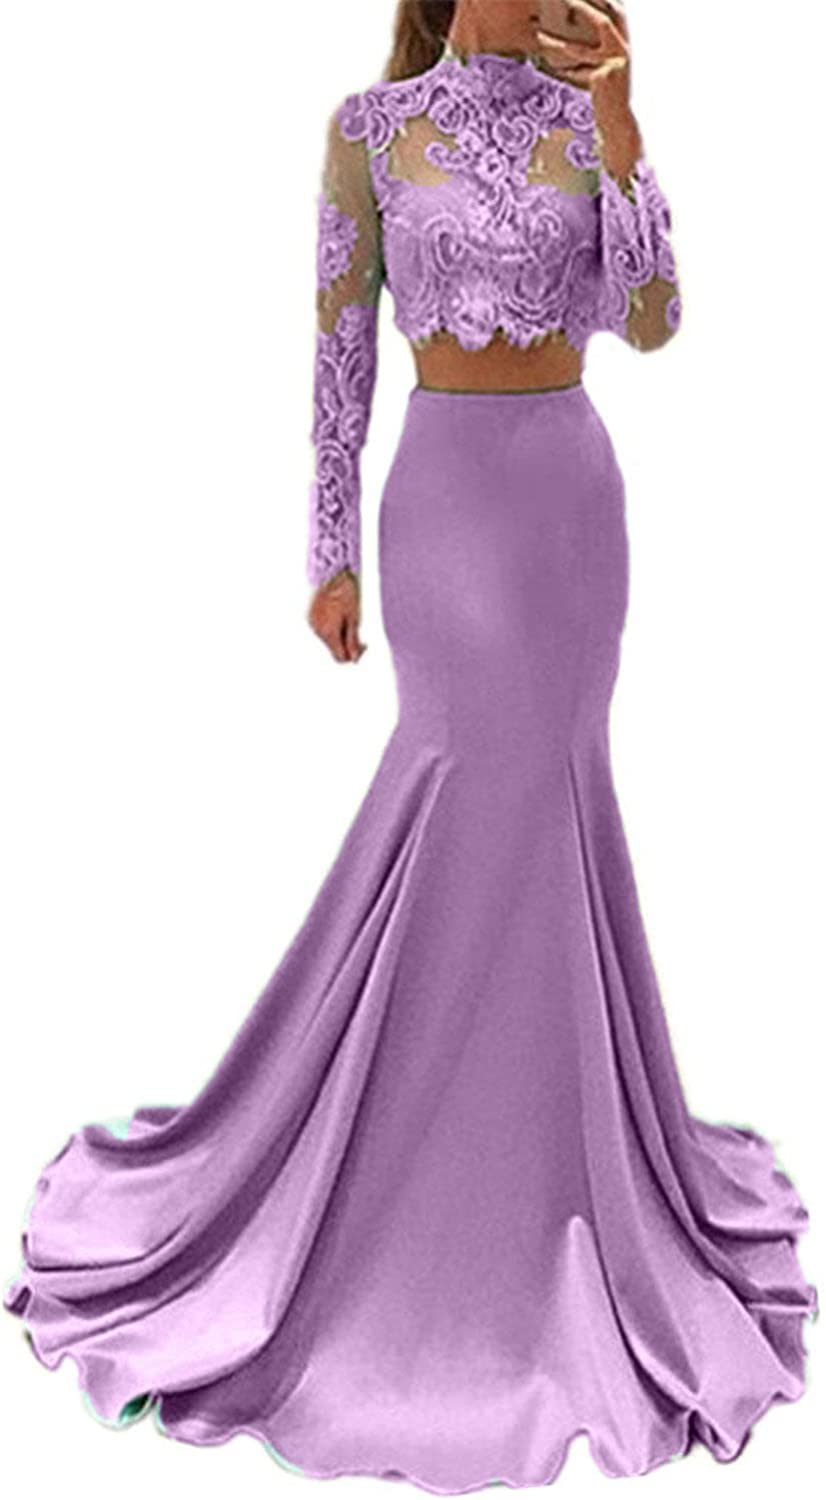 CL Bridal Women's Long Sleeve High Neck Mermaid 2 Piece Prom Homecoming Dresses